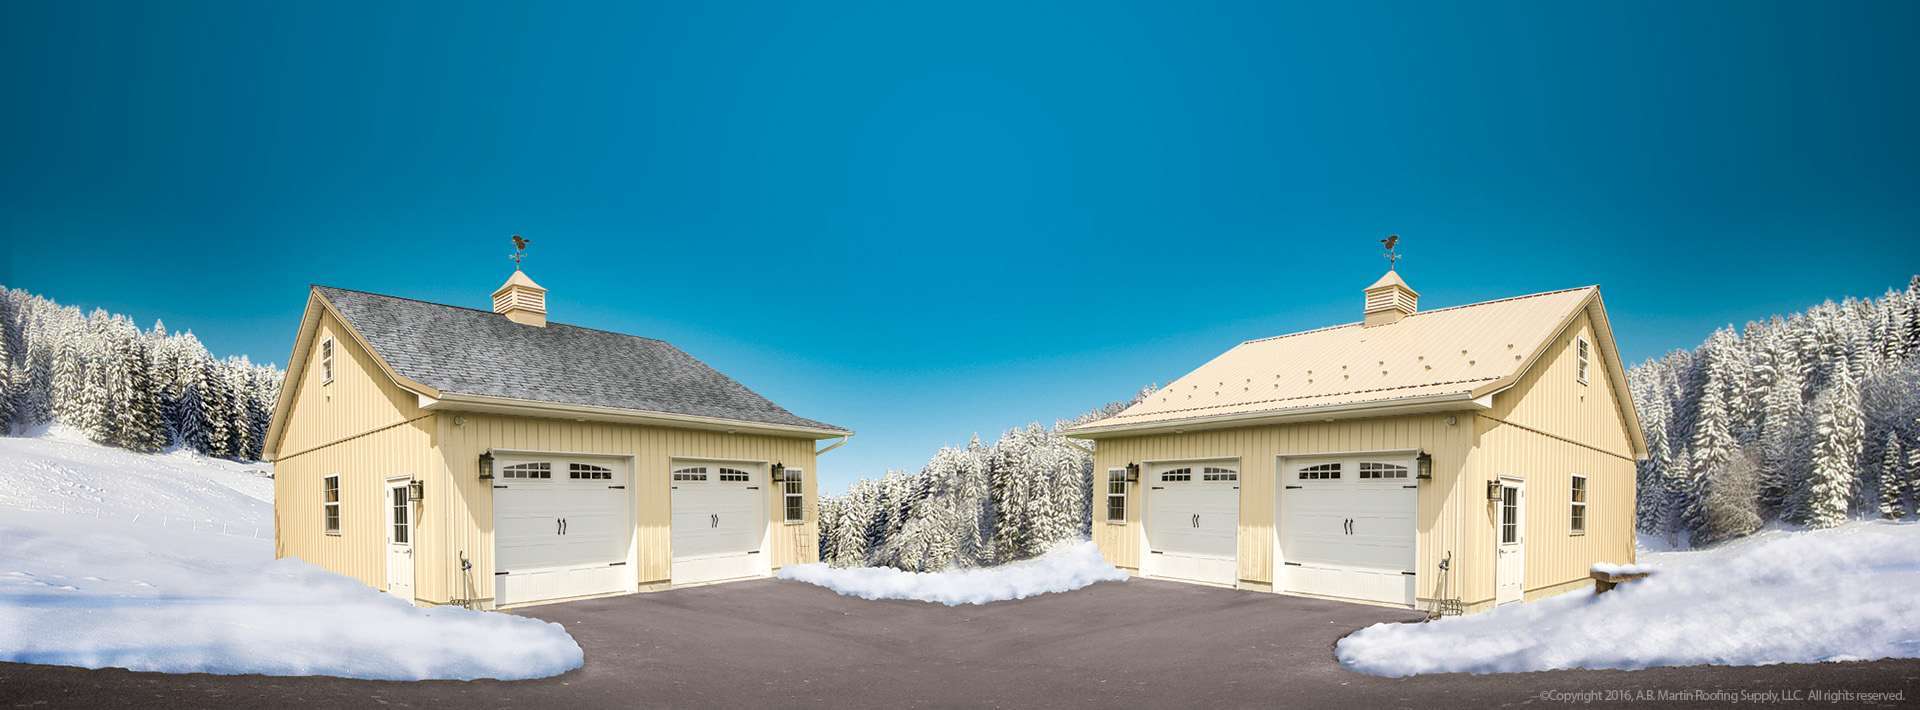 Why You Should Want a Metal Roof in the Winter - A  B